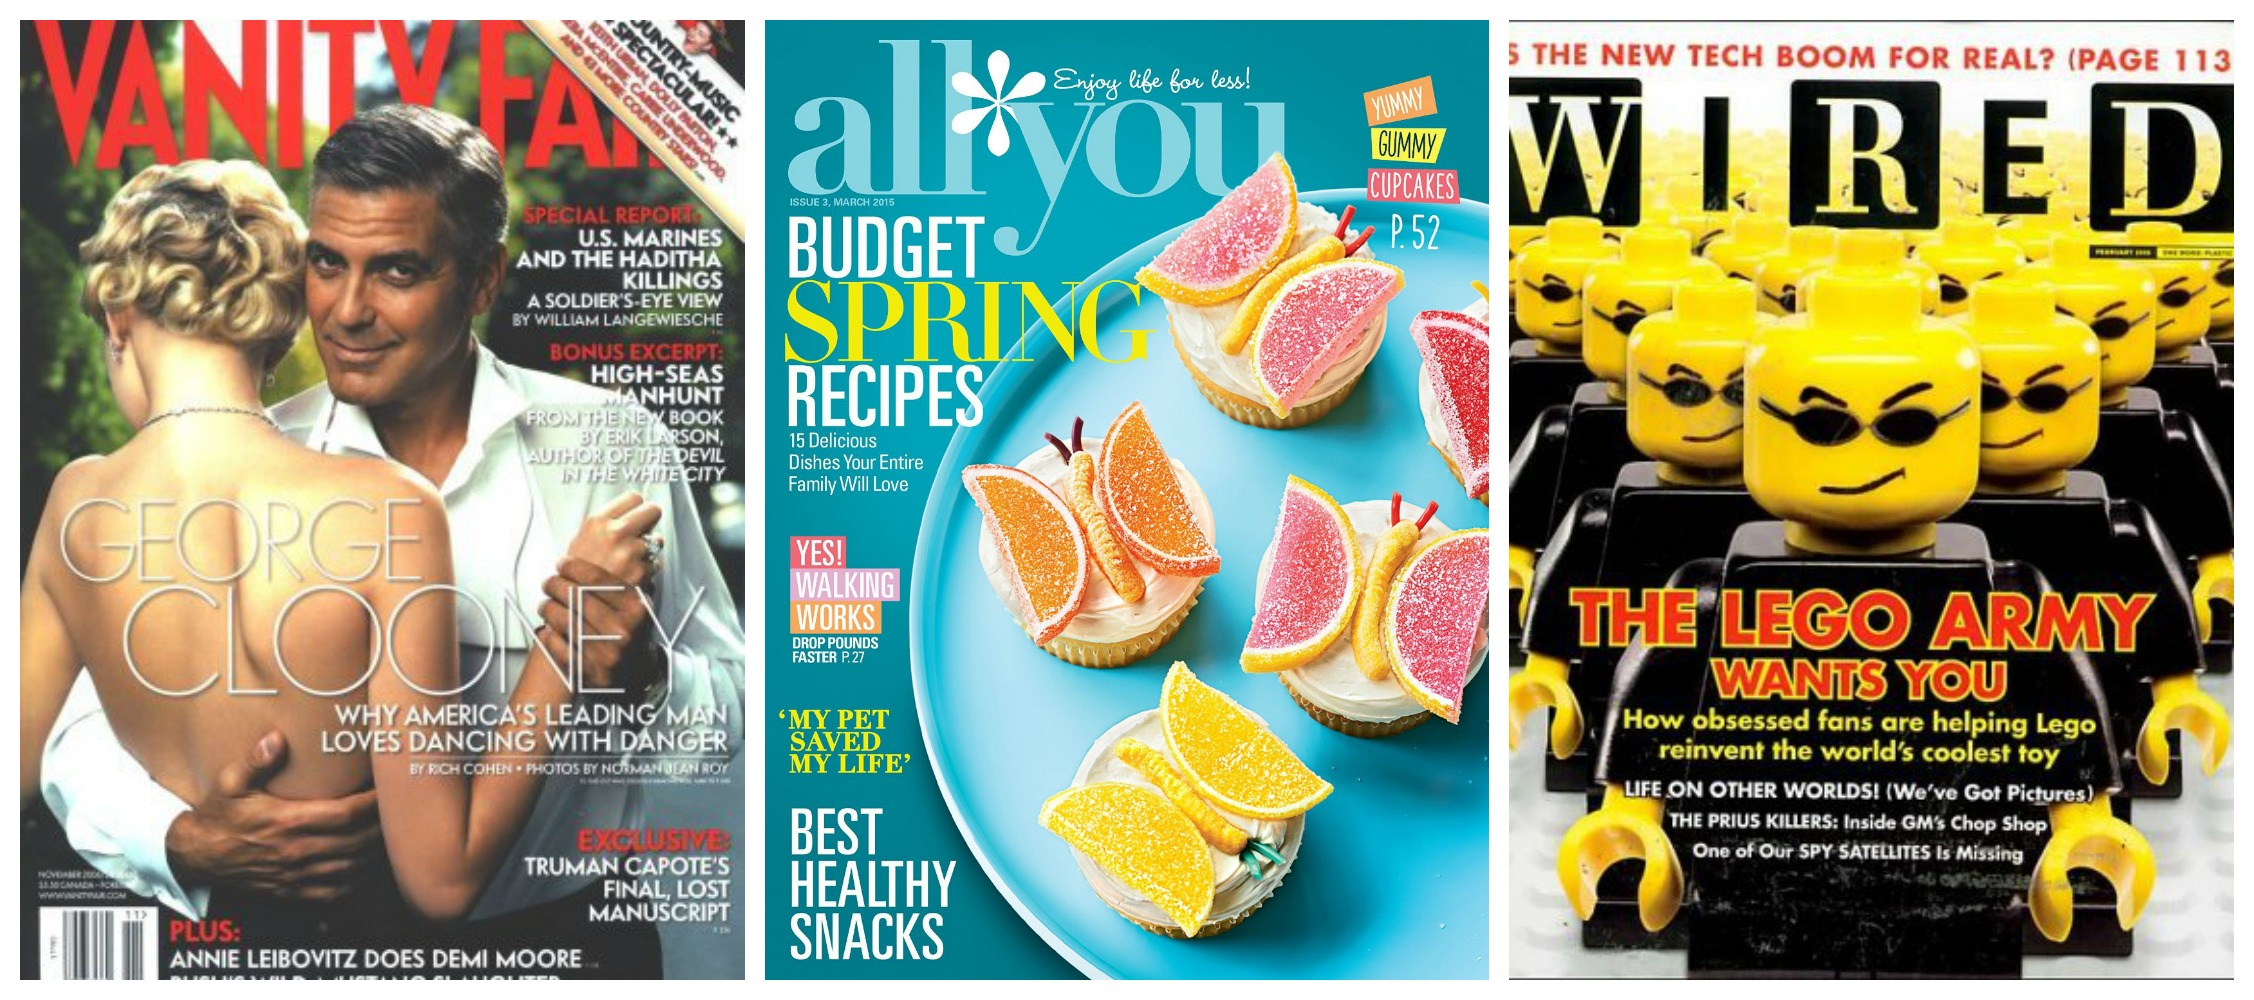 All You, Wired and Vanity Fair Magazine Deals - Stretching a Buck ...